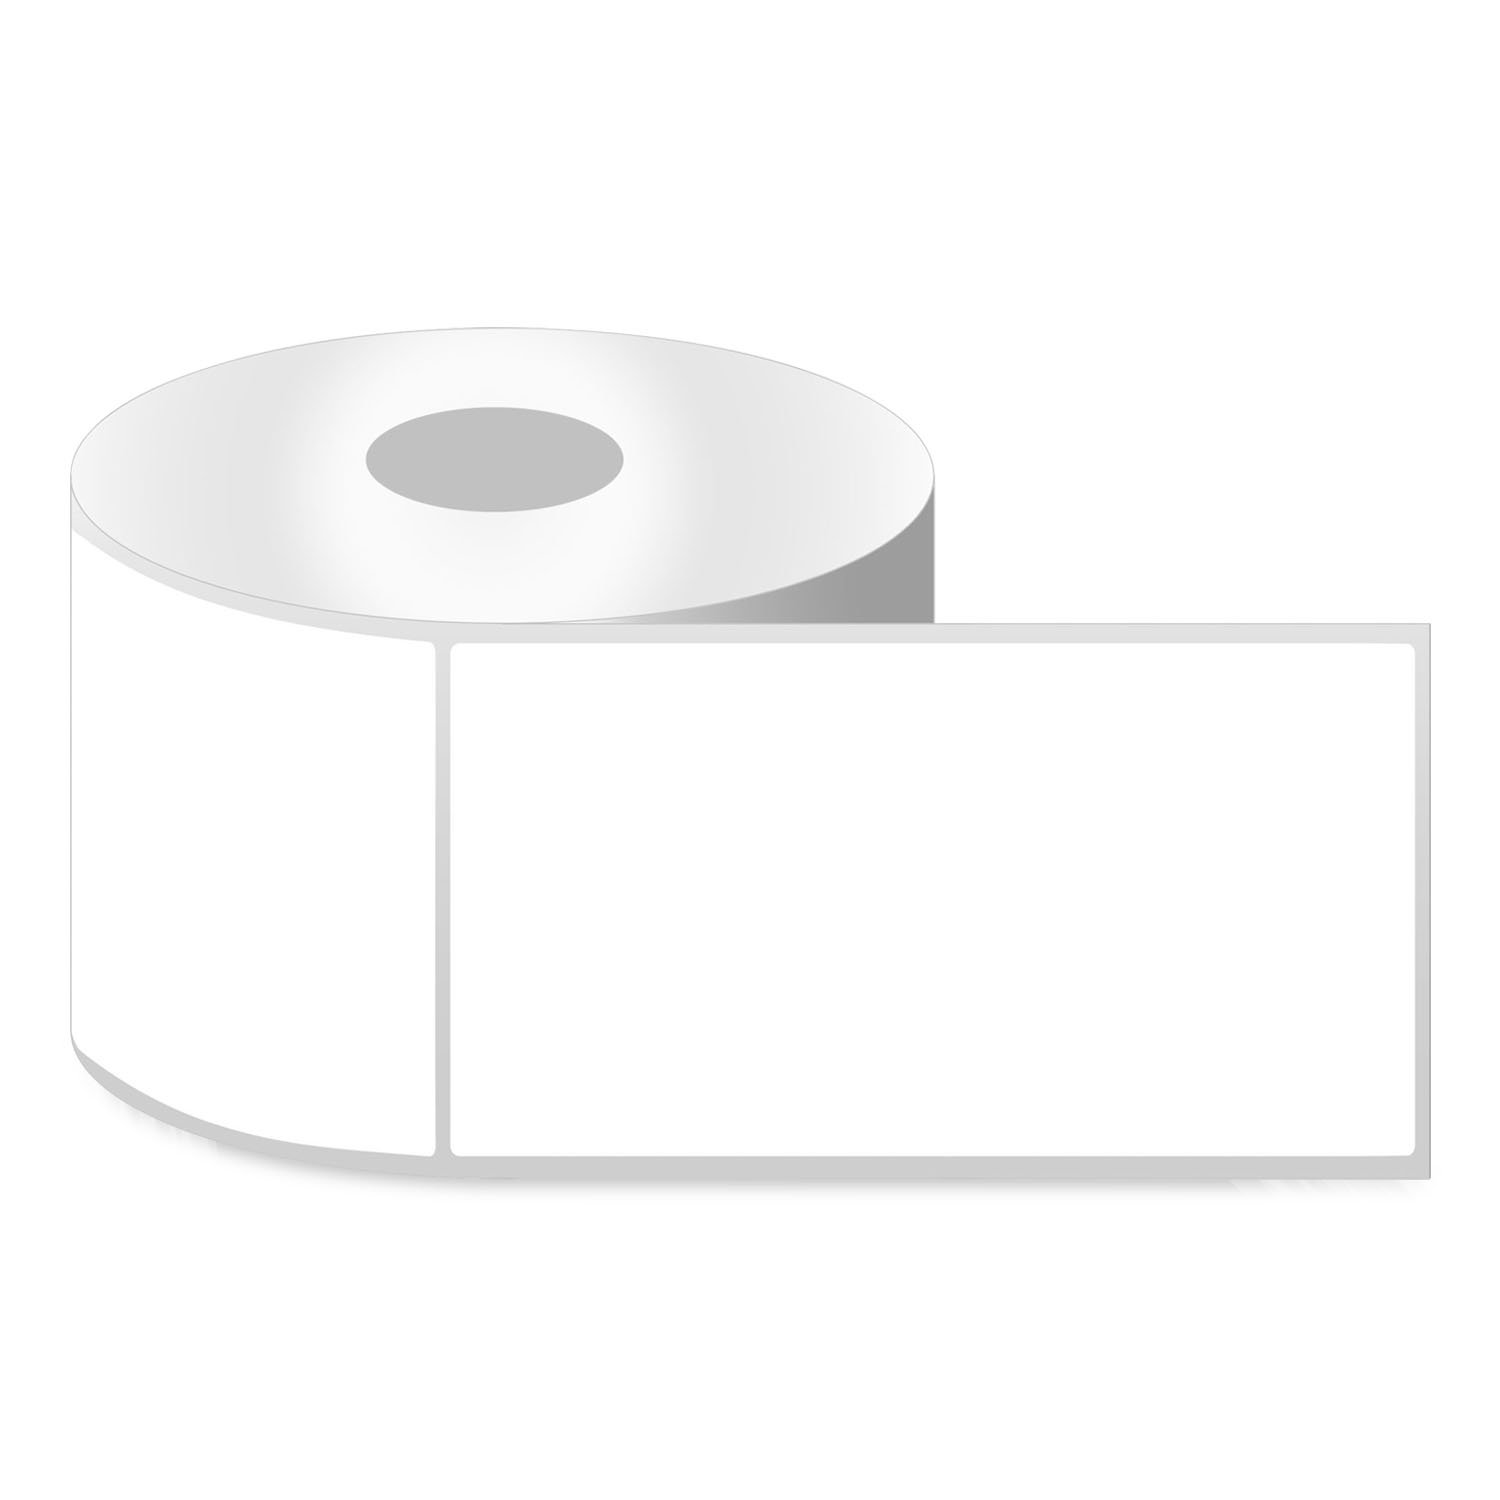 4'' x 6'' [ OfficeSmartLabels ] ZE1400600 Direct Thermal Labels, Compatible with Zebra Printers for Postage Barcode Shipping Desktop Printer Sticker - 4 Rolls / 1'' Core by OfficeSmartLabels